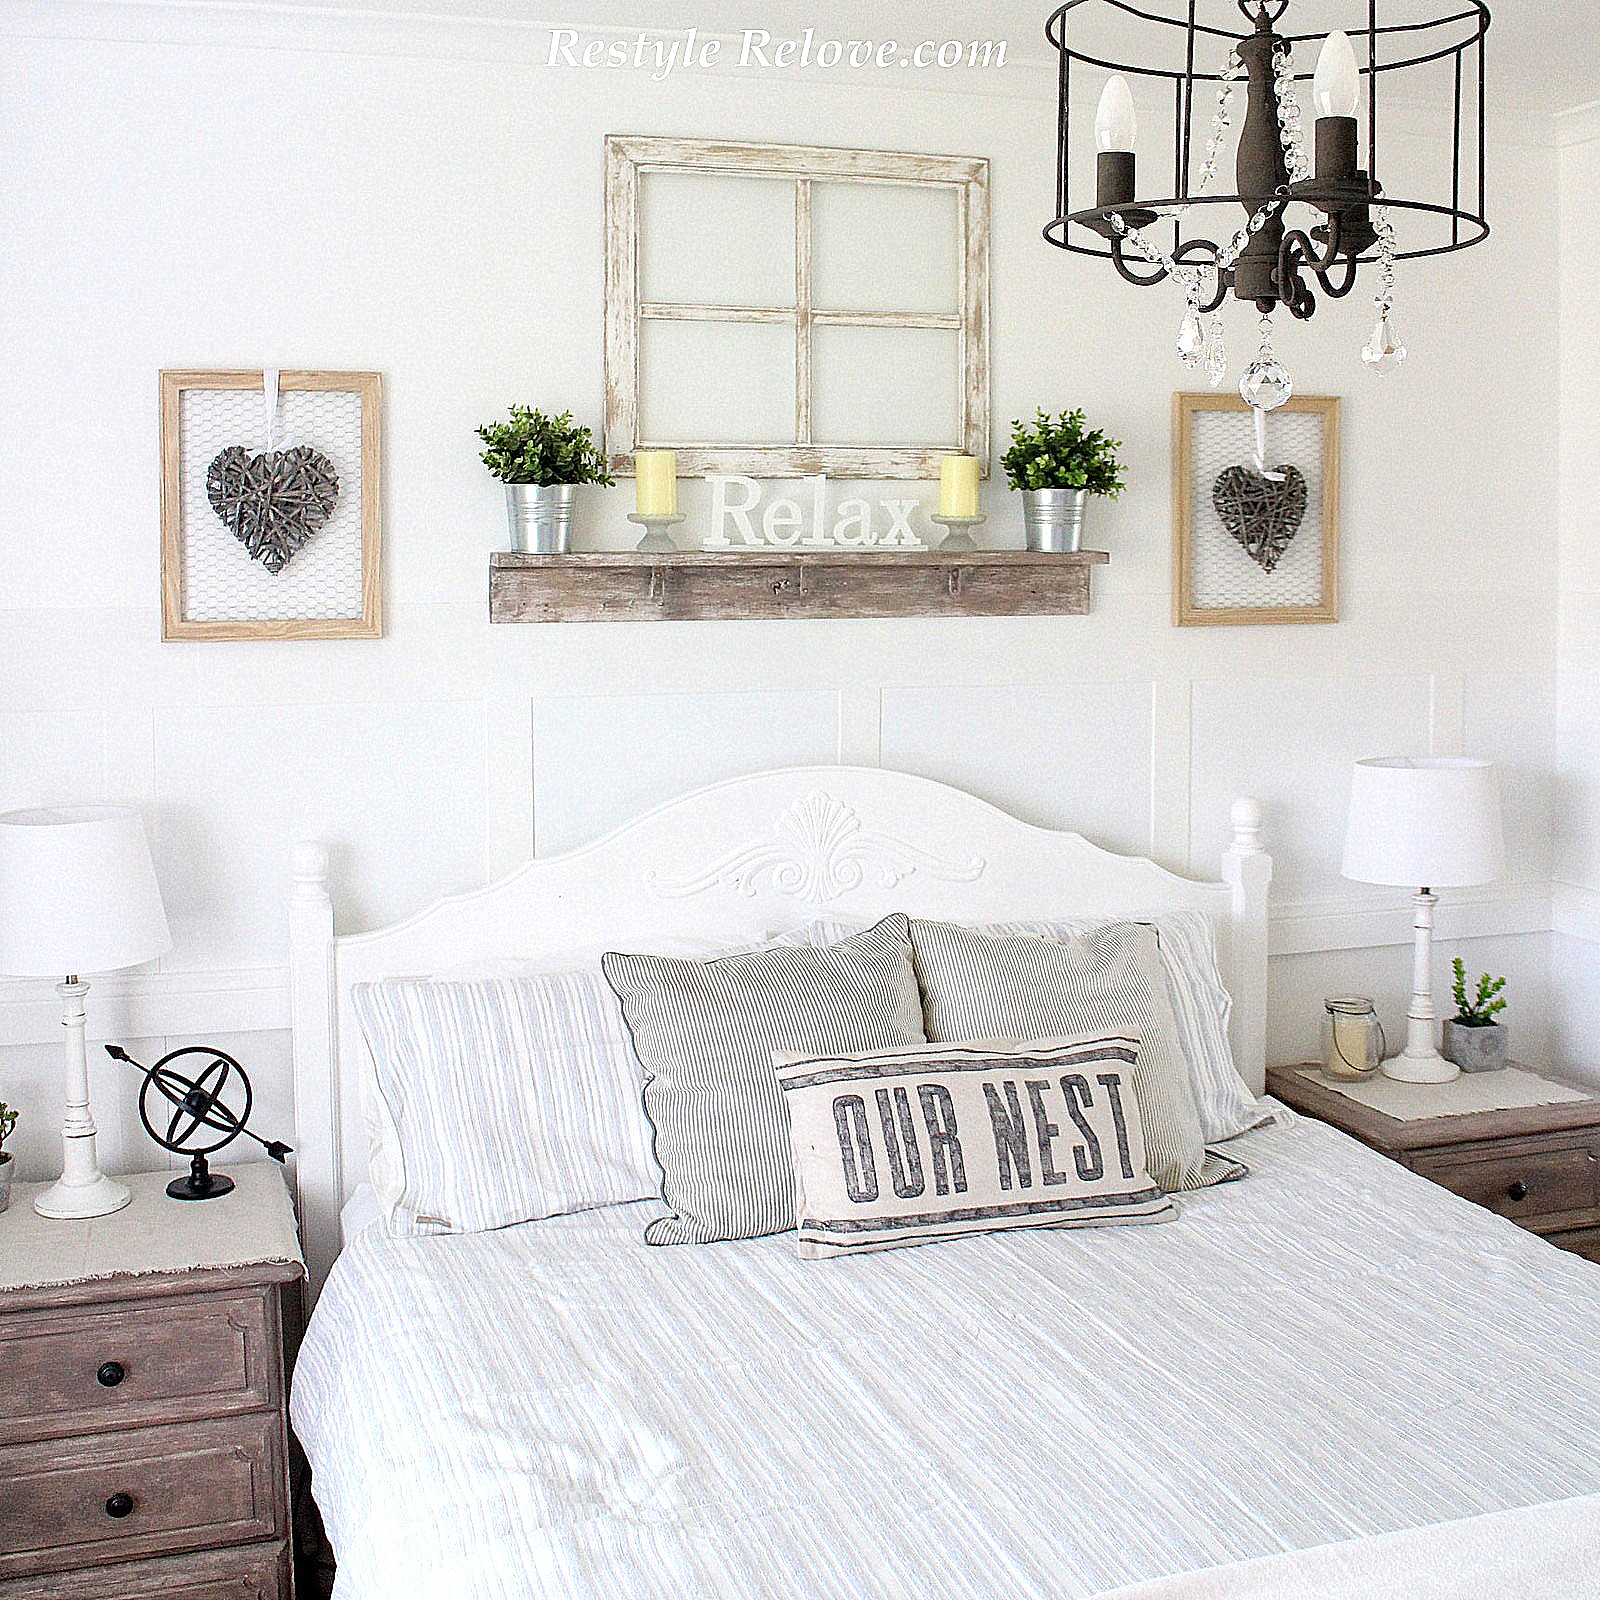 new rustic farmhouse bedside lamps in